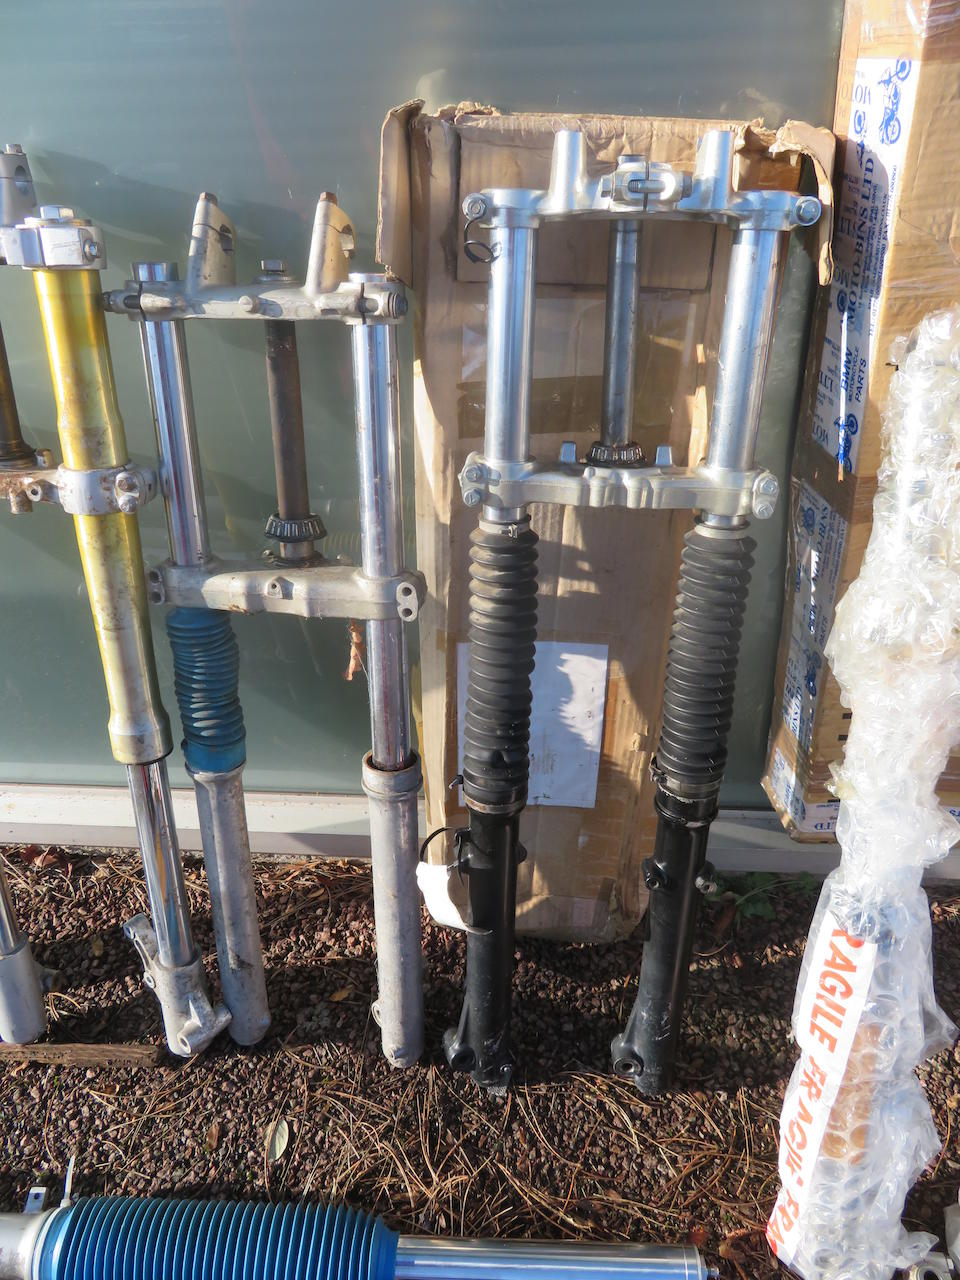 A large quantity of telescopic forks